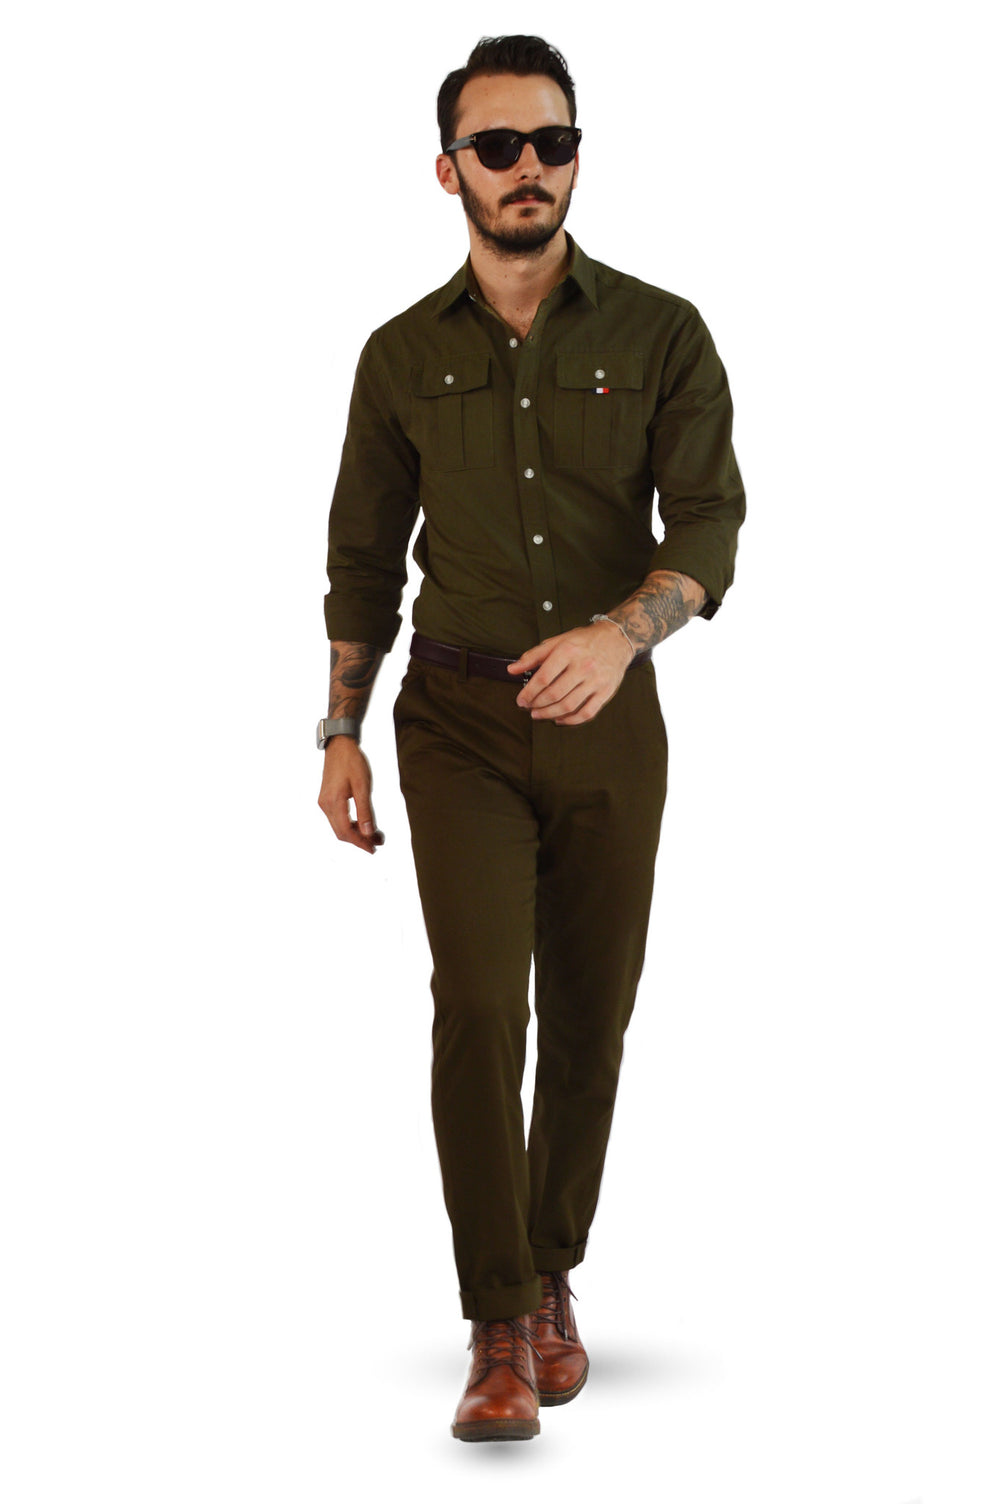 Military slim fit chinos with military tailored shirt